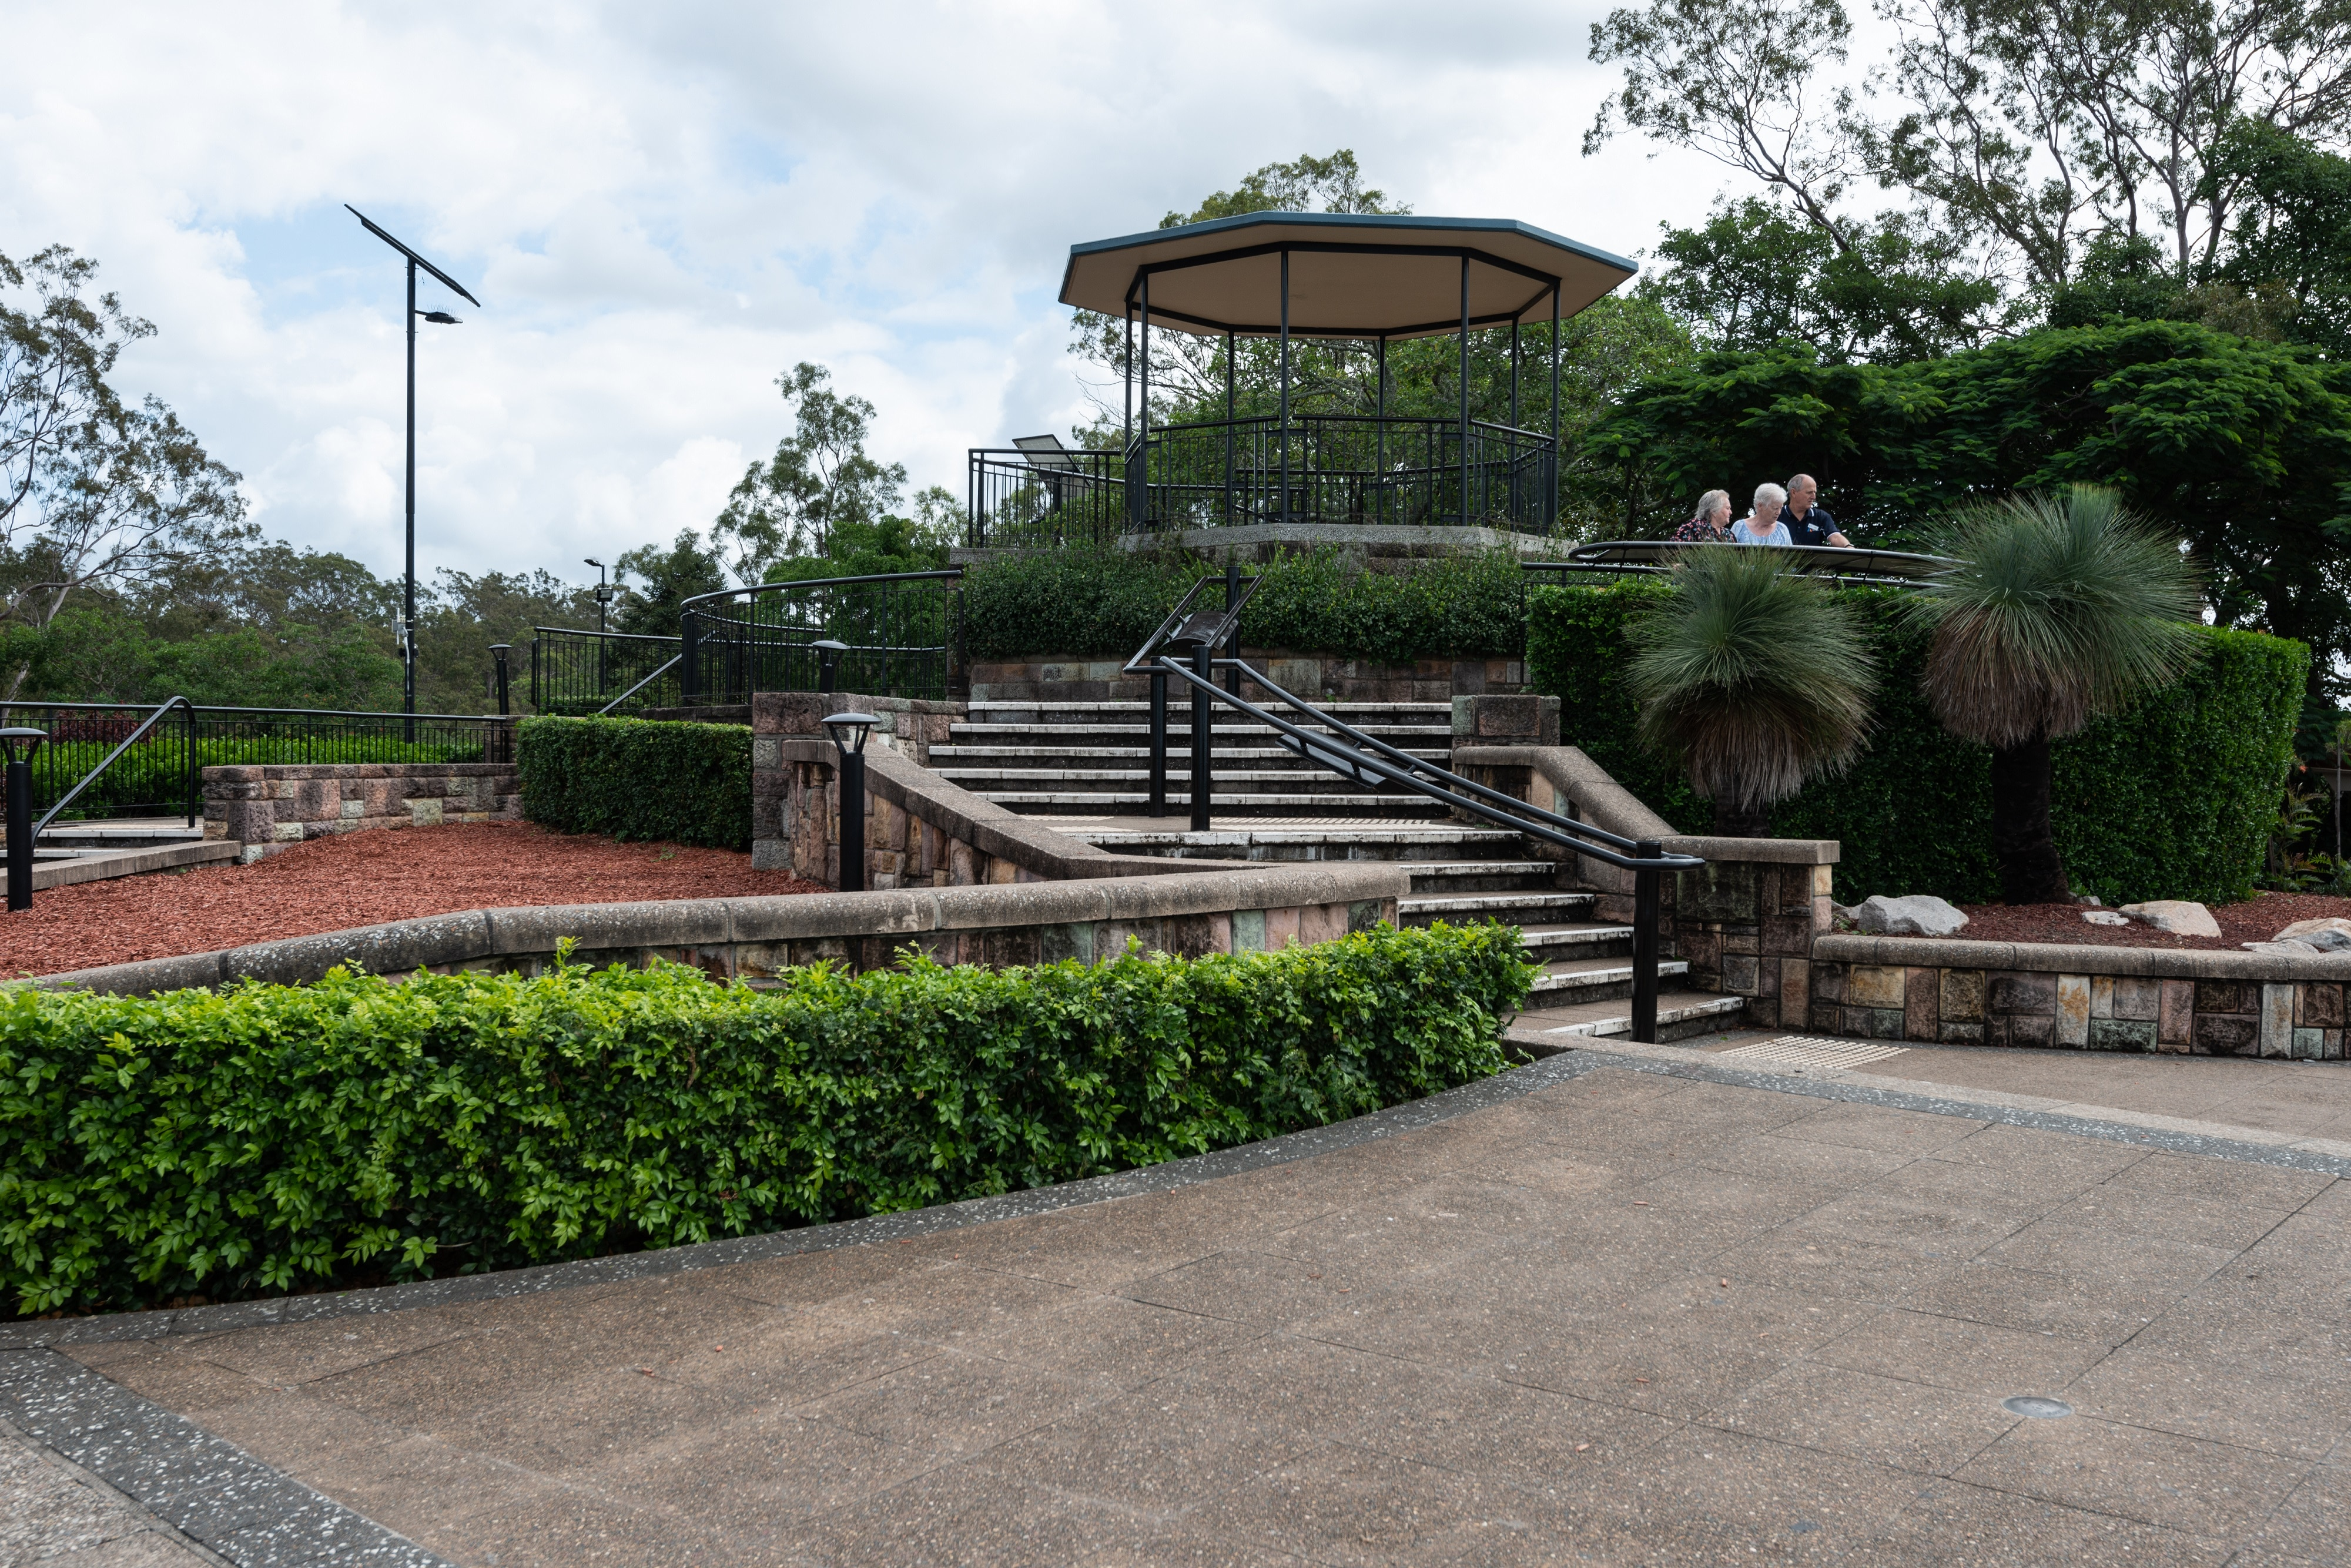 Look out for low-maintenance Duration at Brisbane tourist spot